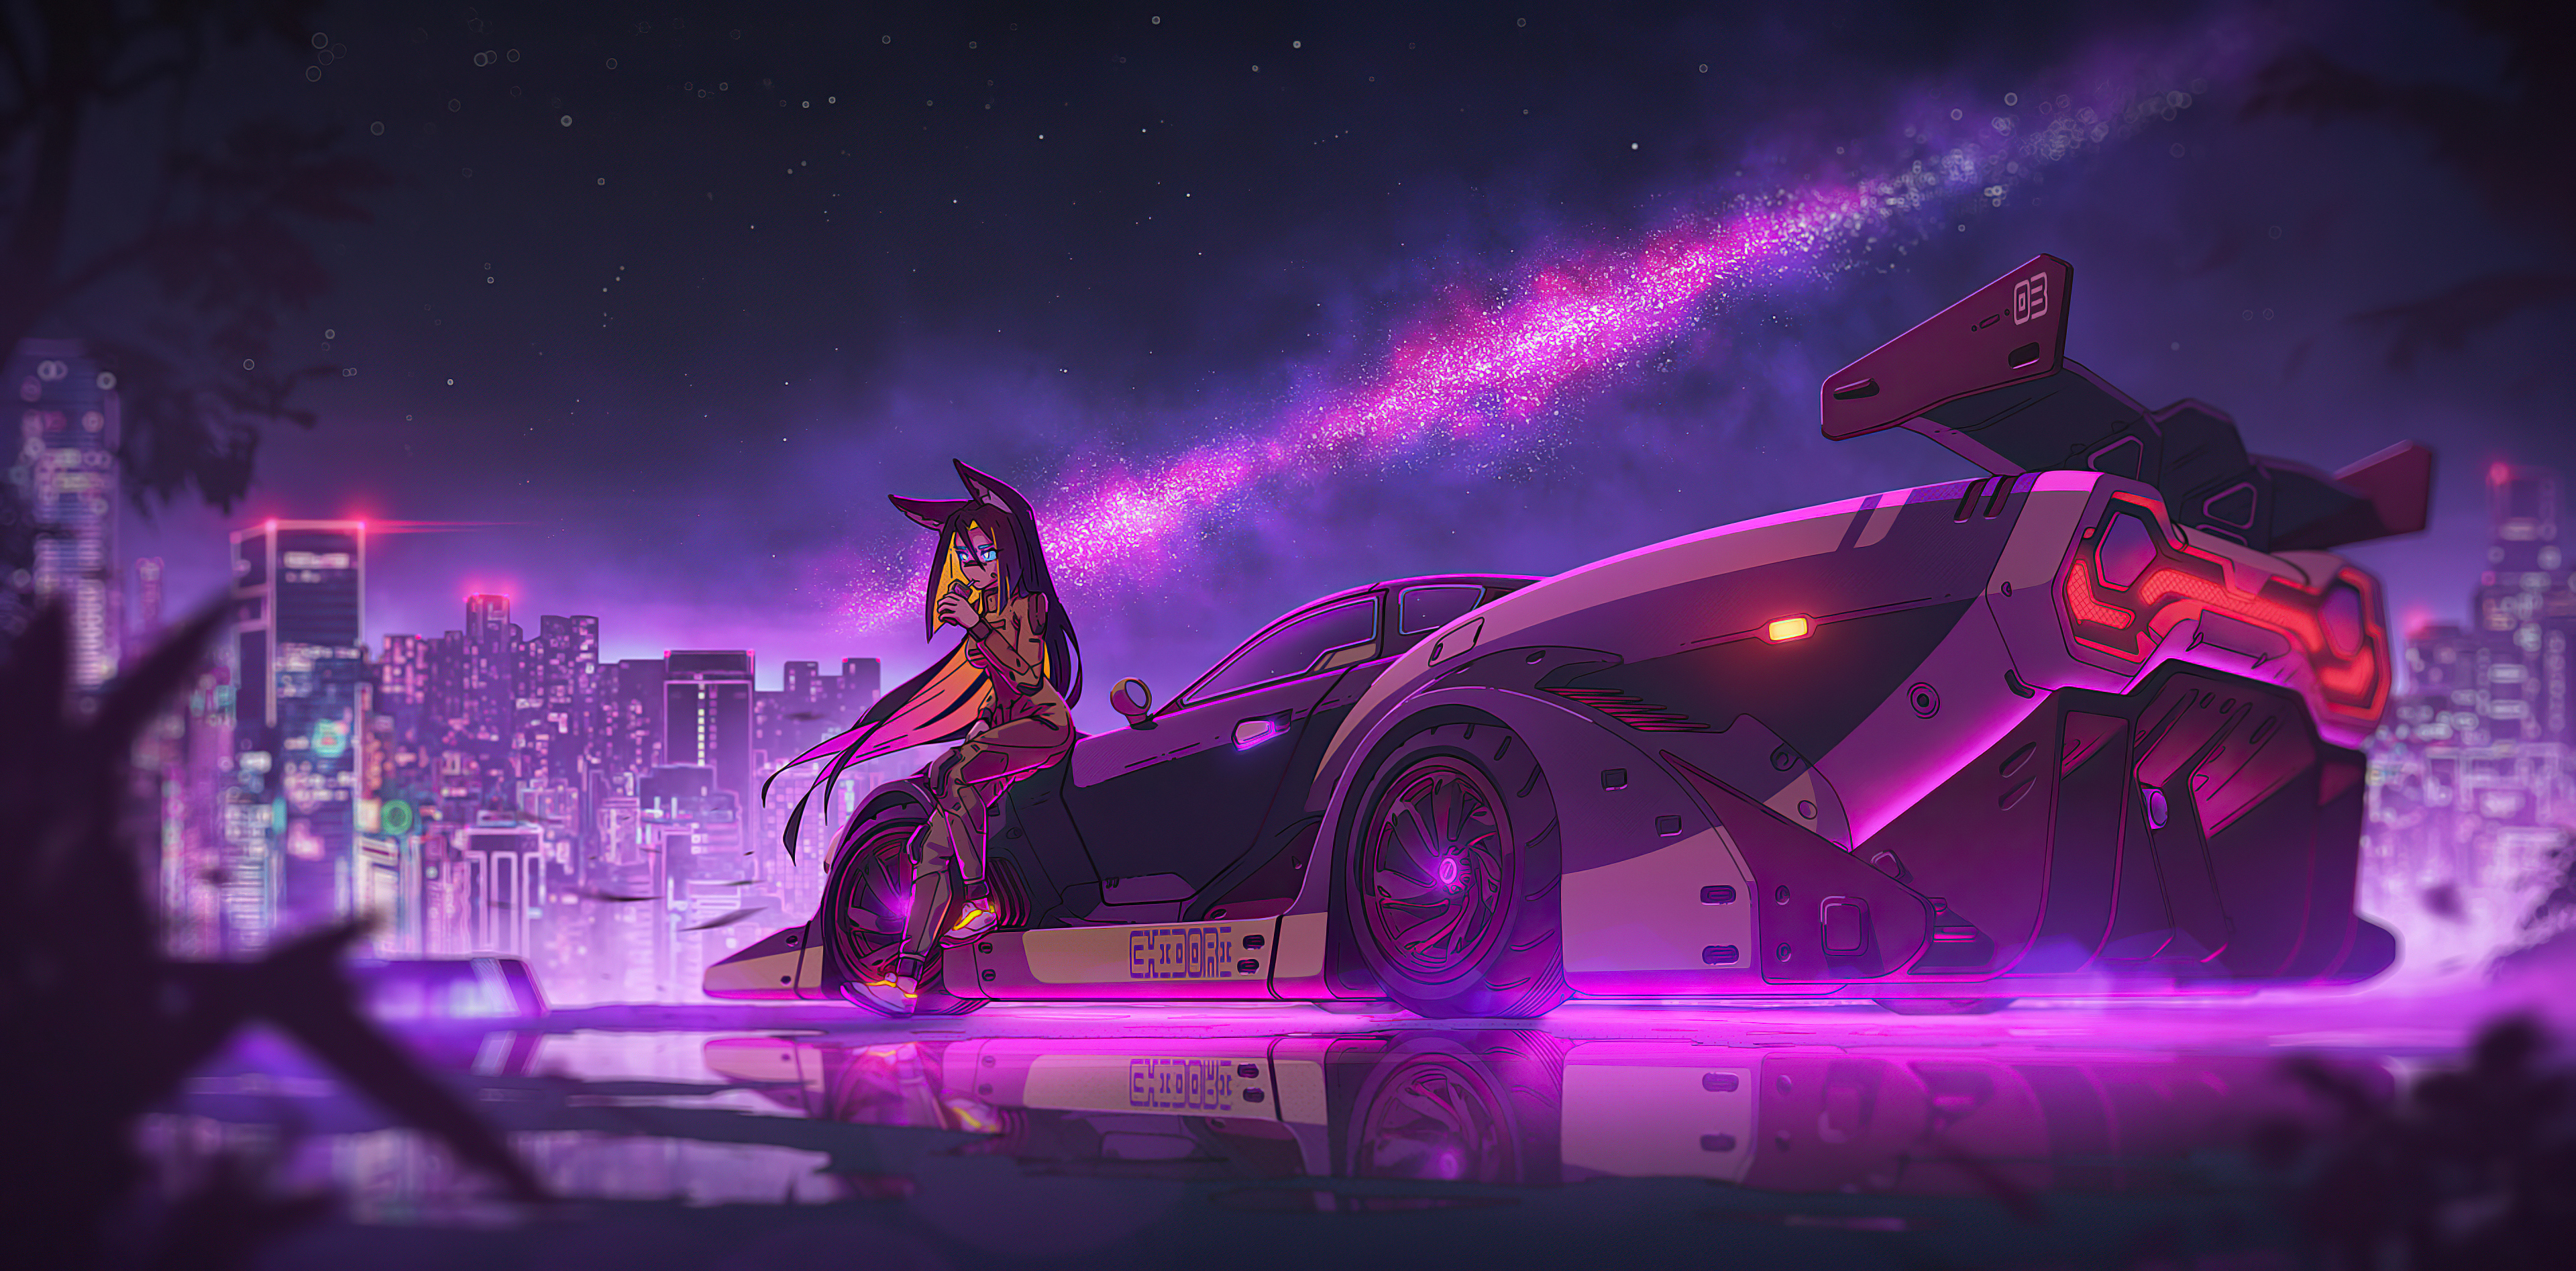 1440x900 Anime Girl Cyberpunk Ride 4k 1440x900 Resolution ...